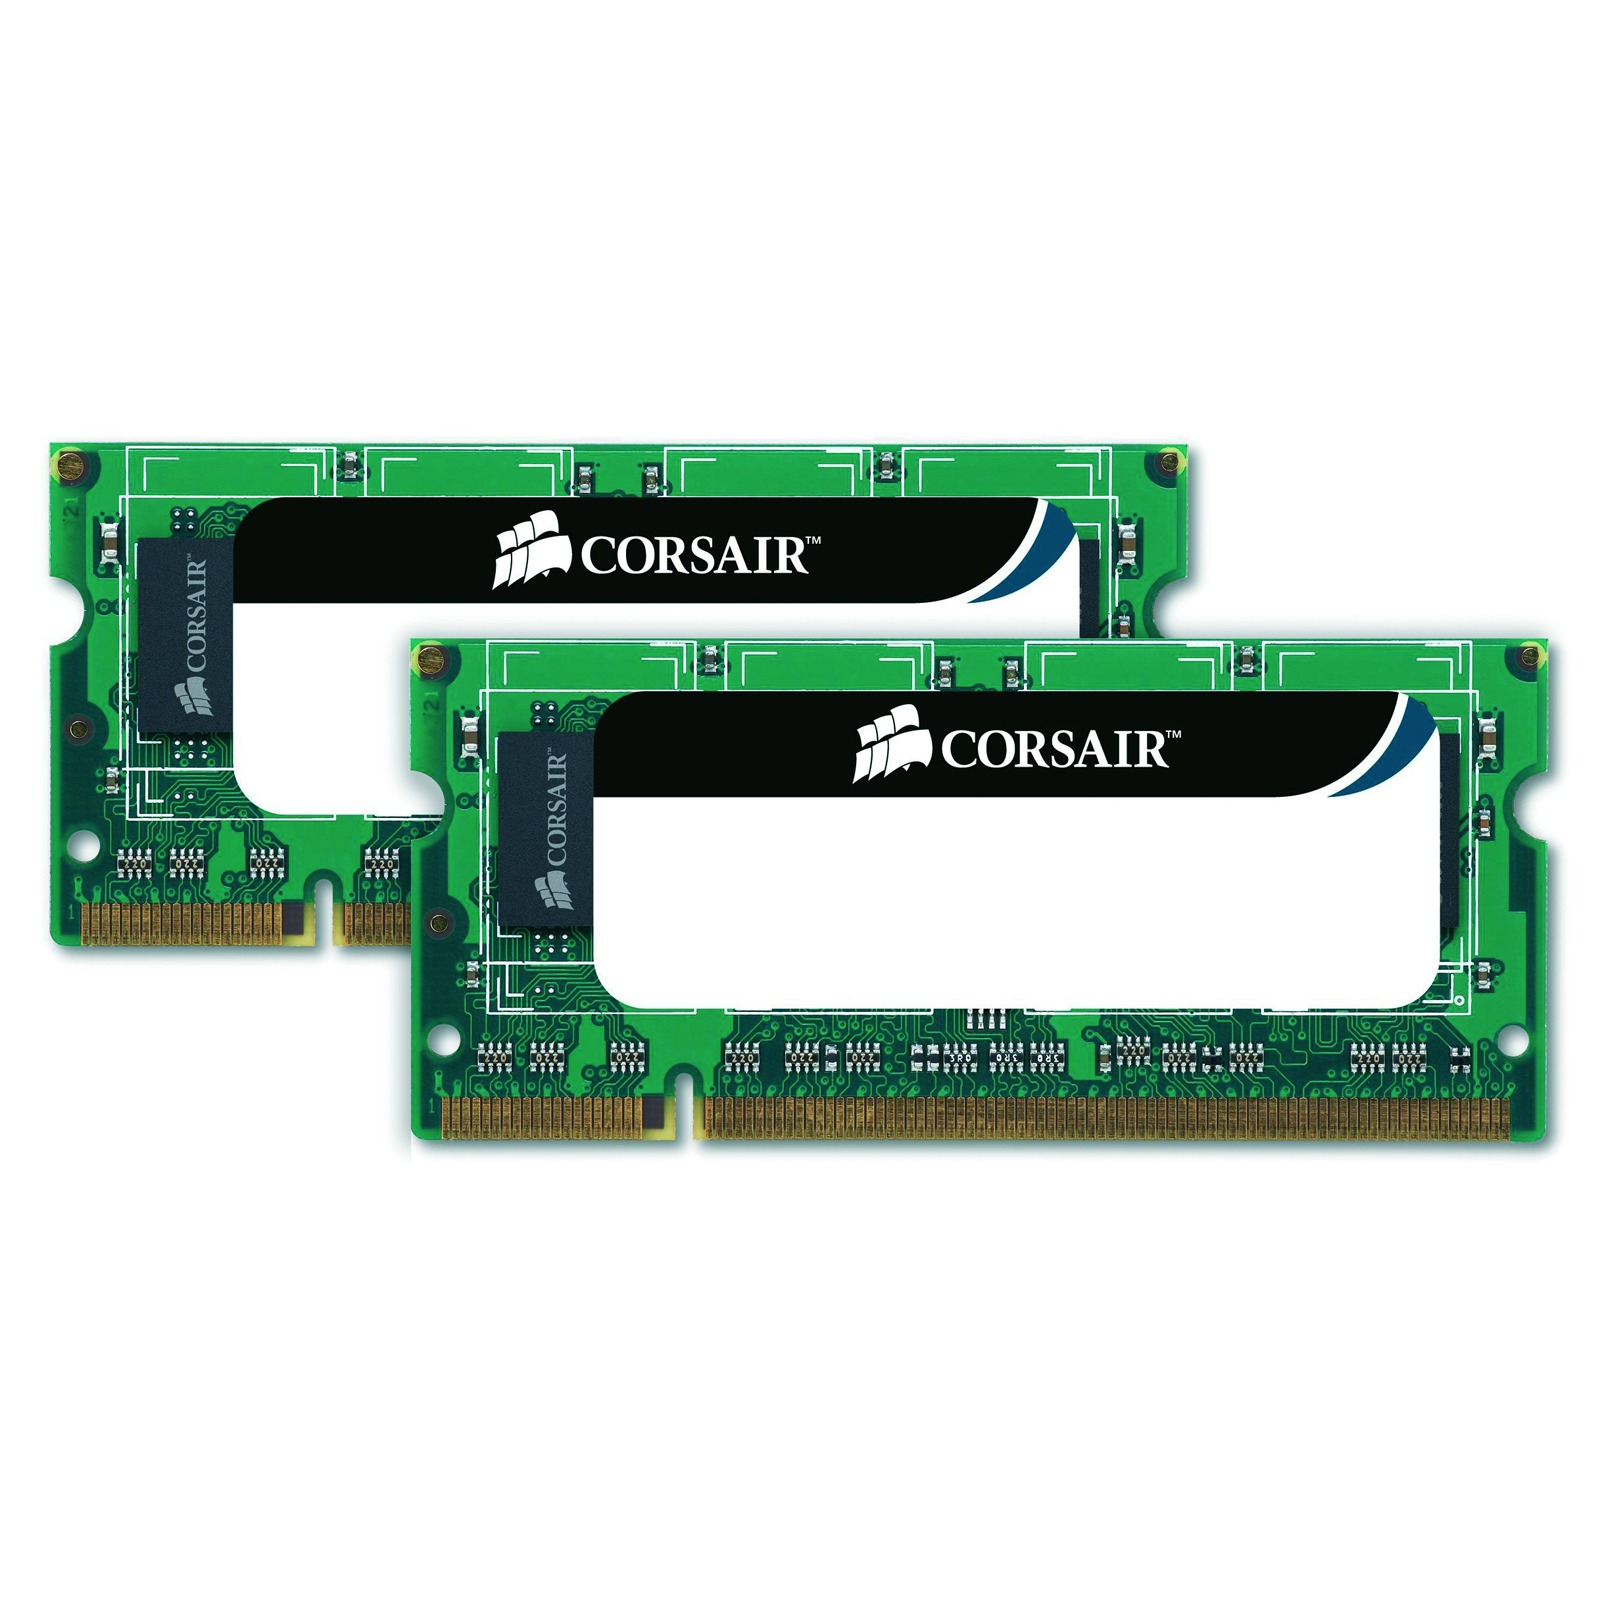 Mémoire PC portable Corsair Value Select SO-DIMM 8 Go (2x 4 Go) DDR3 1333 MHz Kit Dual Channel RAM SO-DIMM DDR3 PC10600 - CMSO8GX3M2A1333C9 (garantie 10 ans par Corsair)